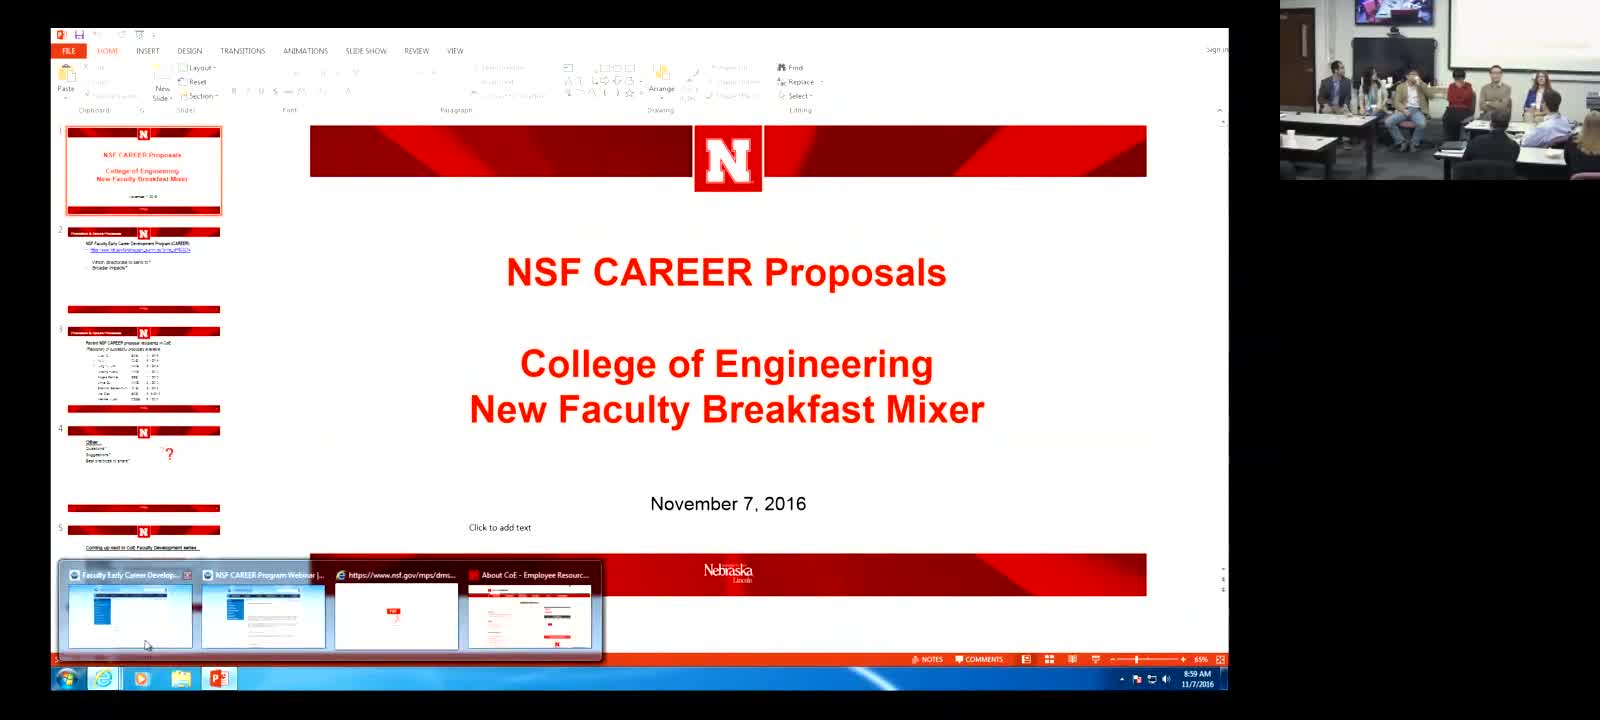 New Faculty Series: CAREER Proposal Panel Discussion